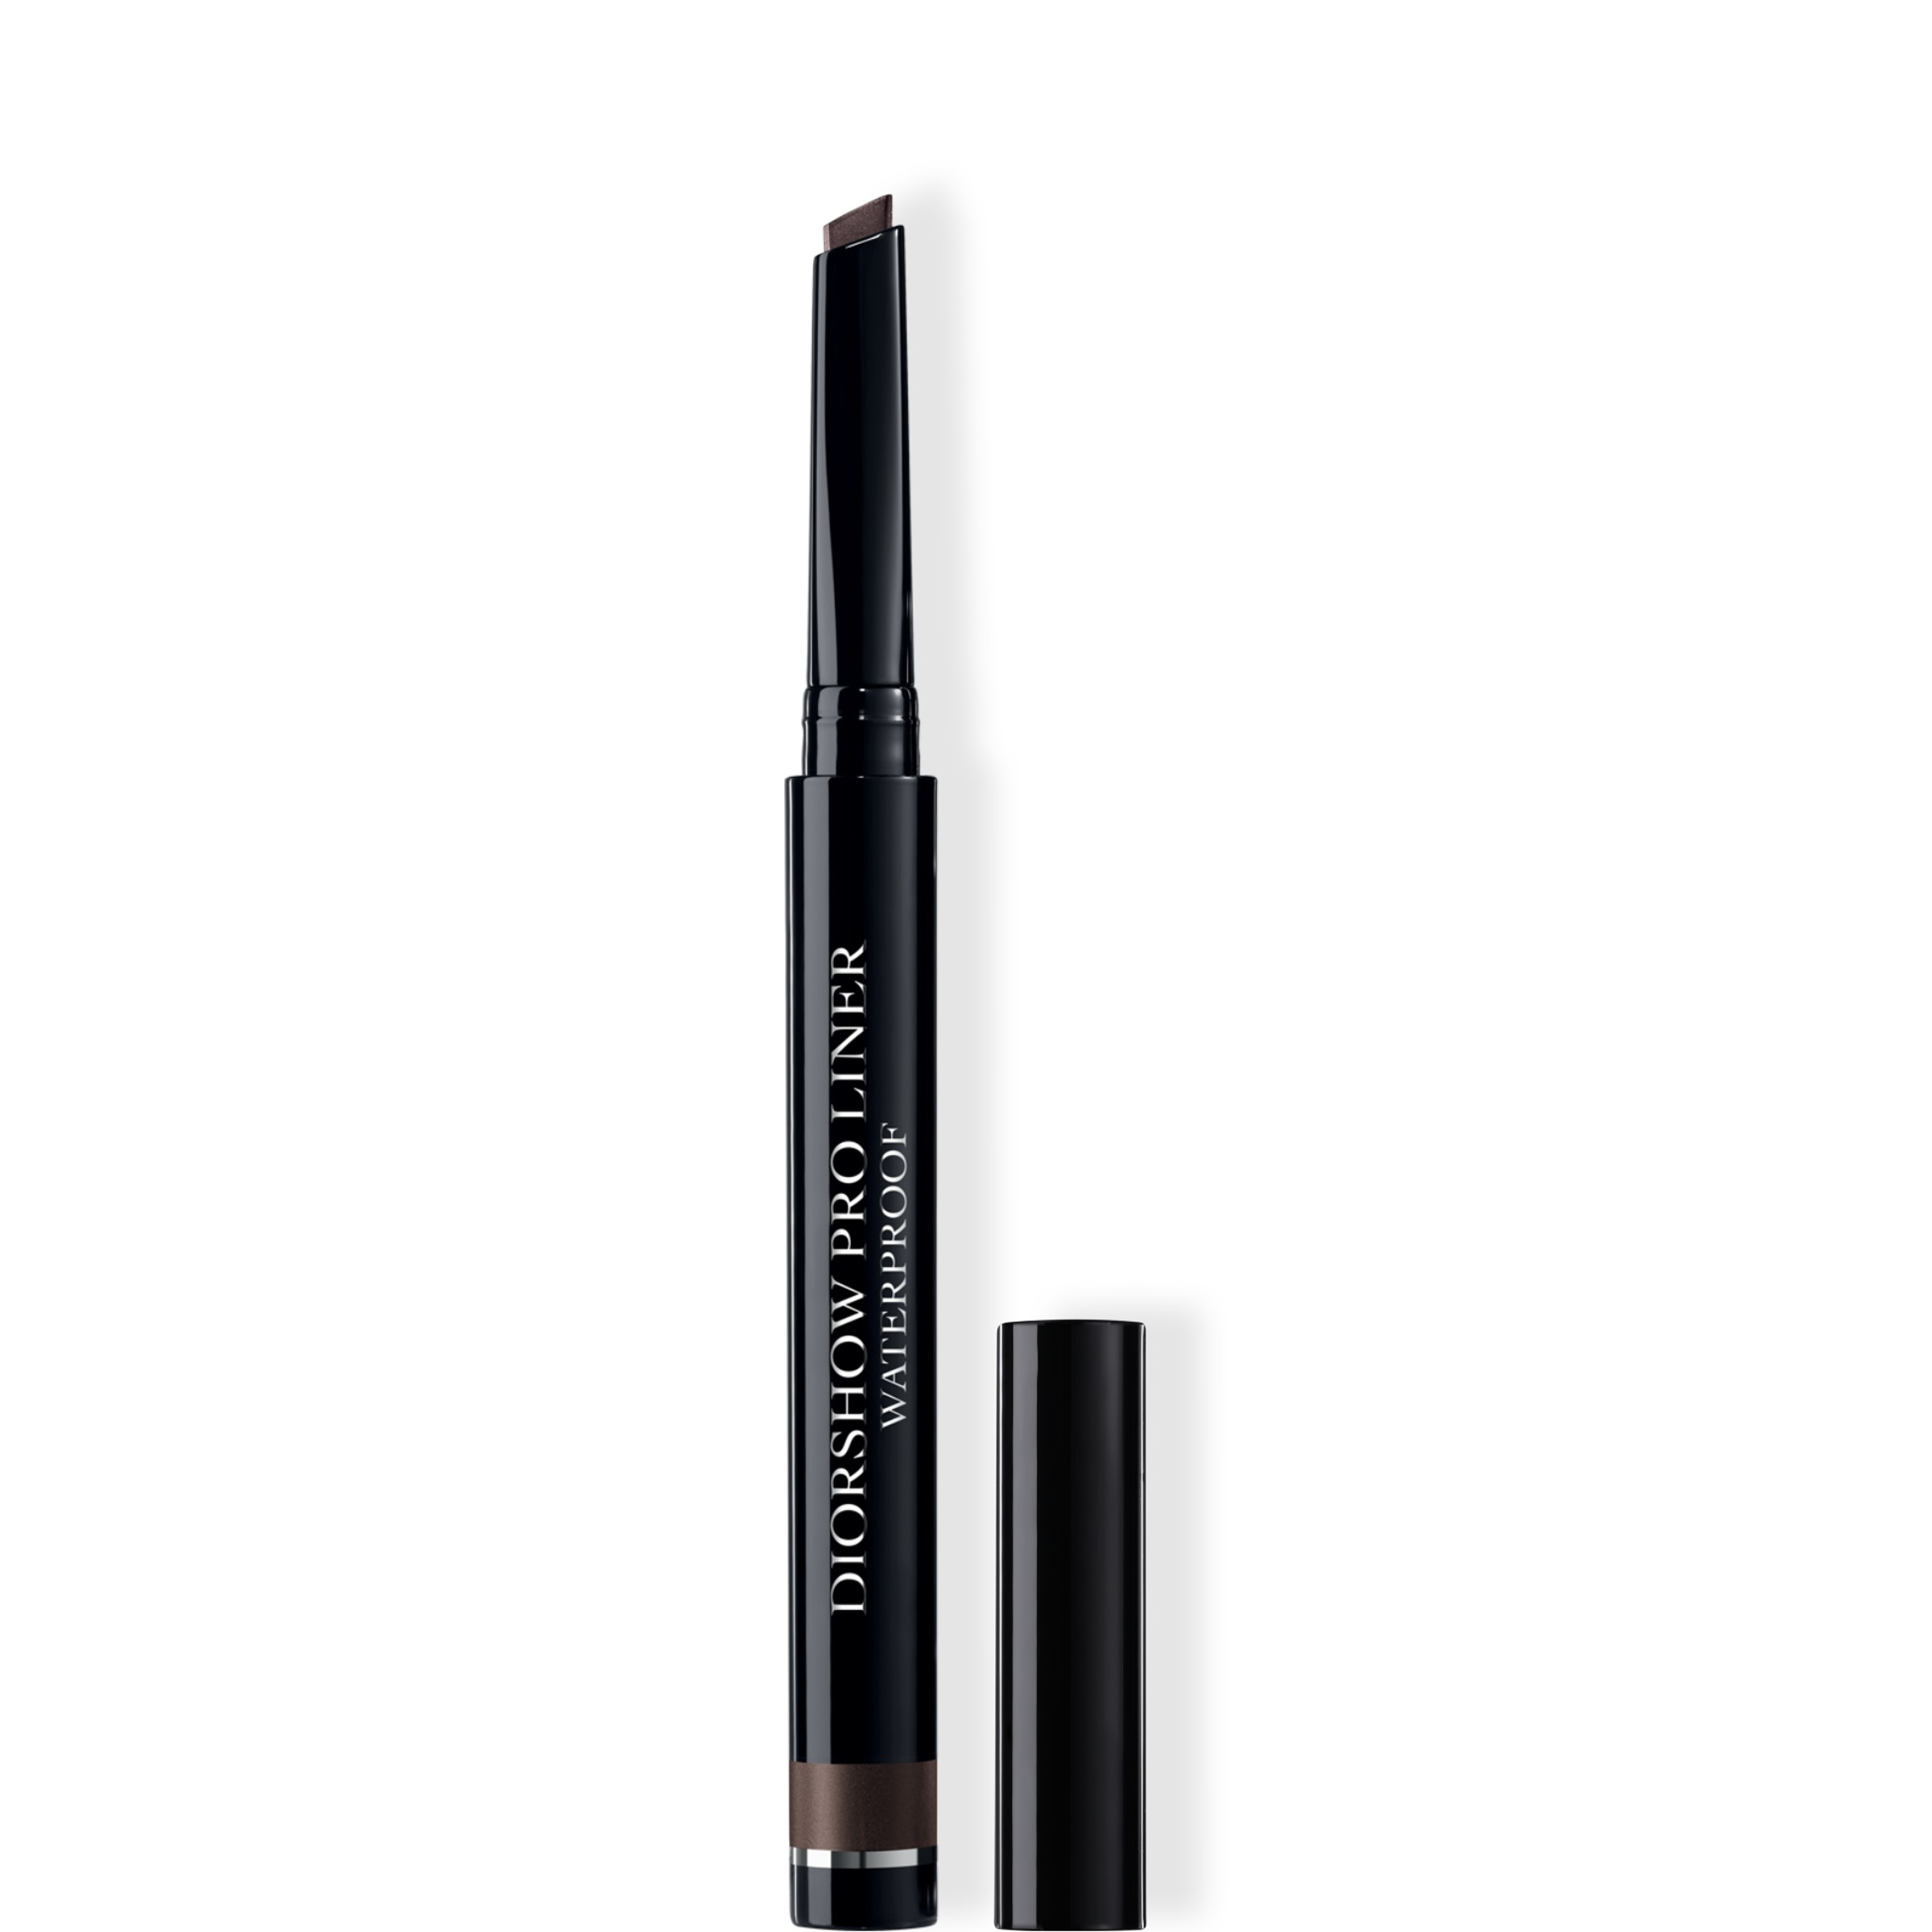 Diorshow Pro Liner Waterproof 582 Backstage Brown